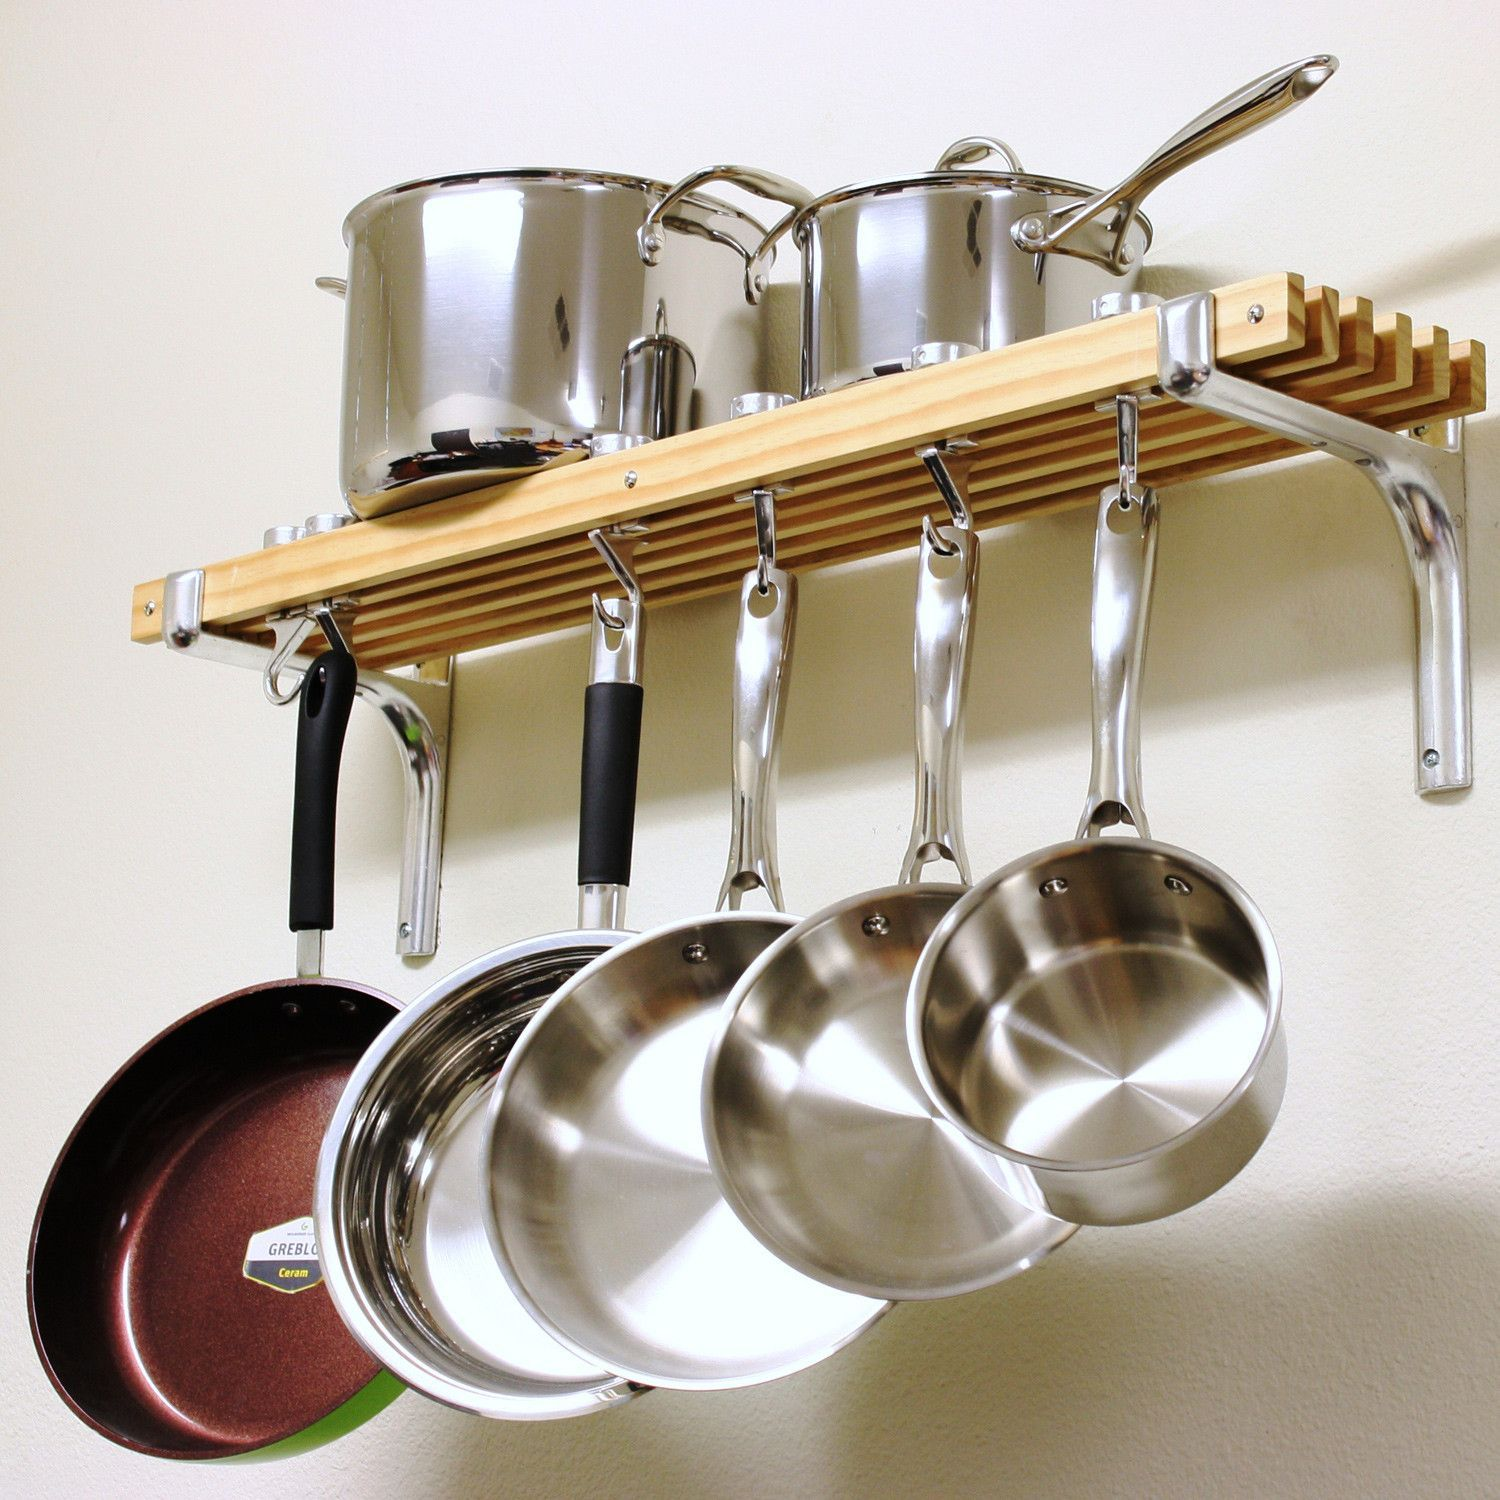 Cookware Organizer Pot And Pans Wall Mounted Rack Kitchen Pot Pot Rack Pot Rack Hanging